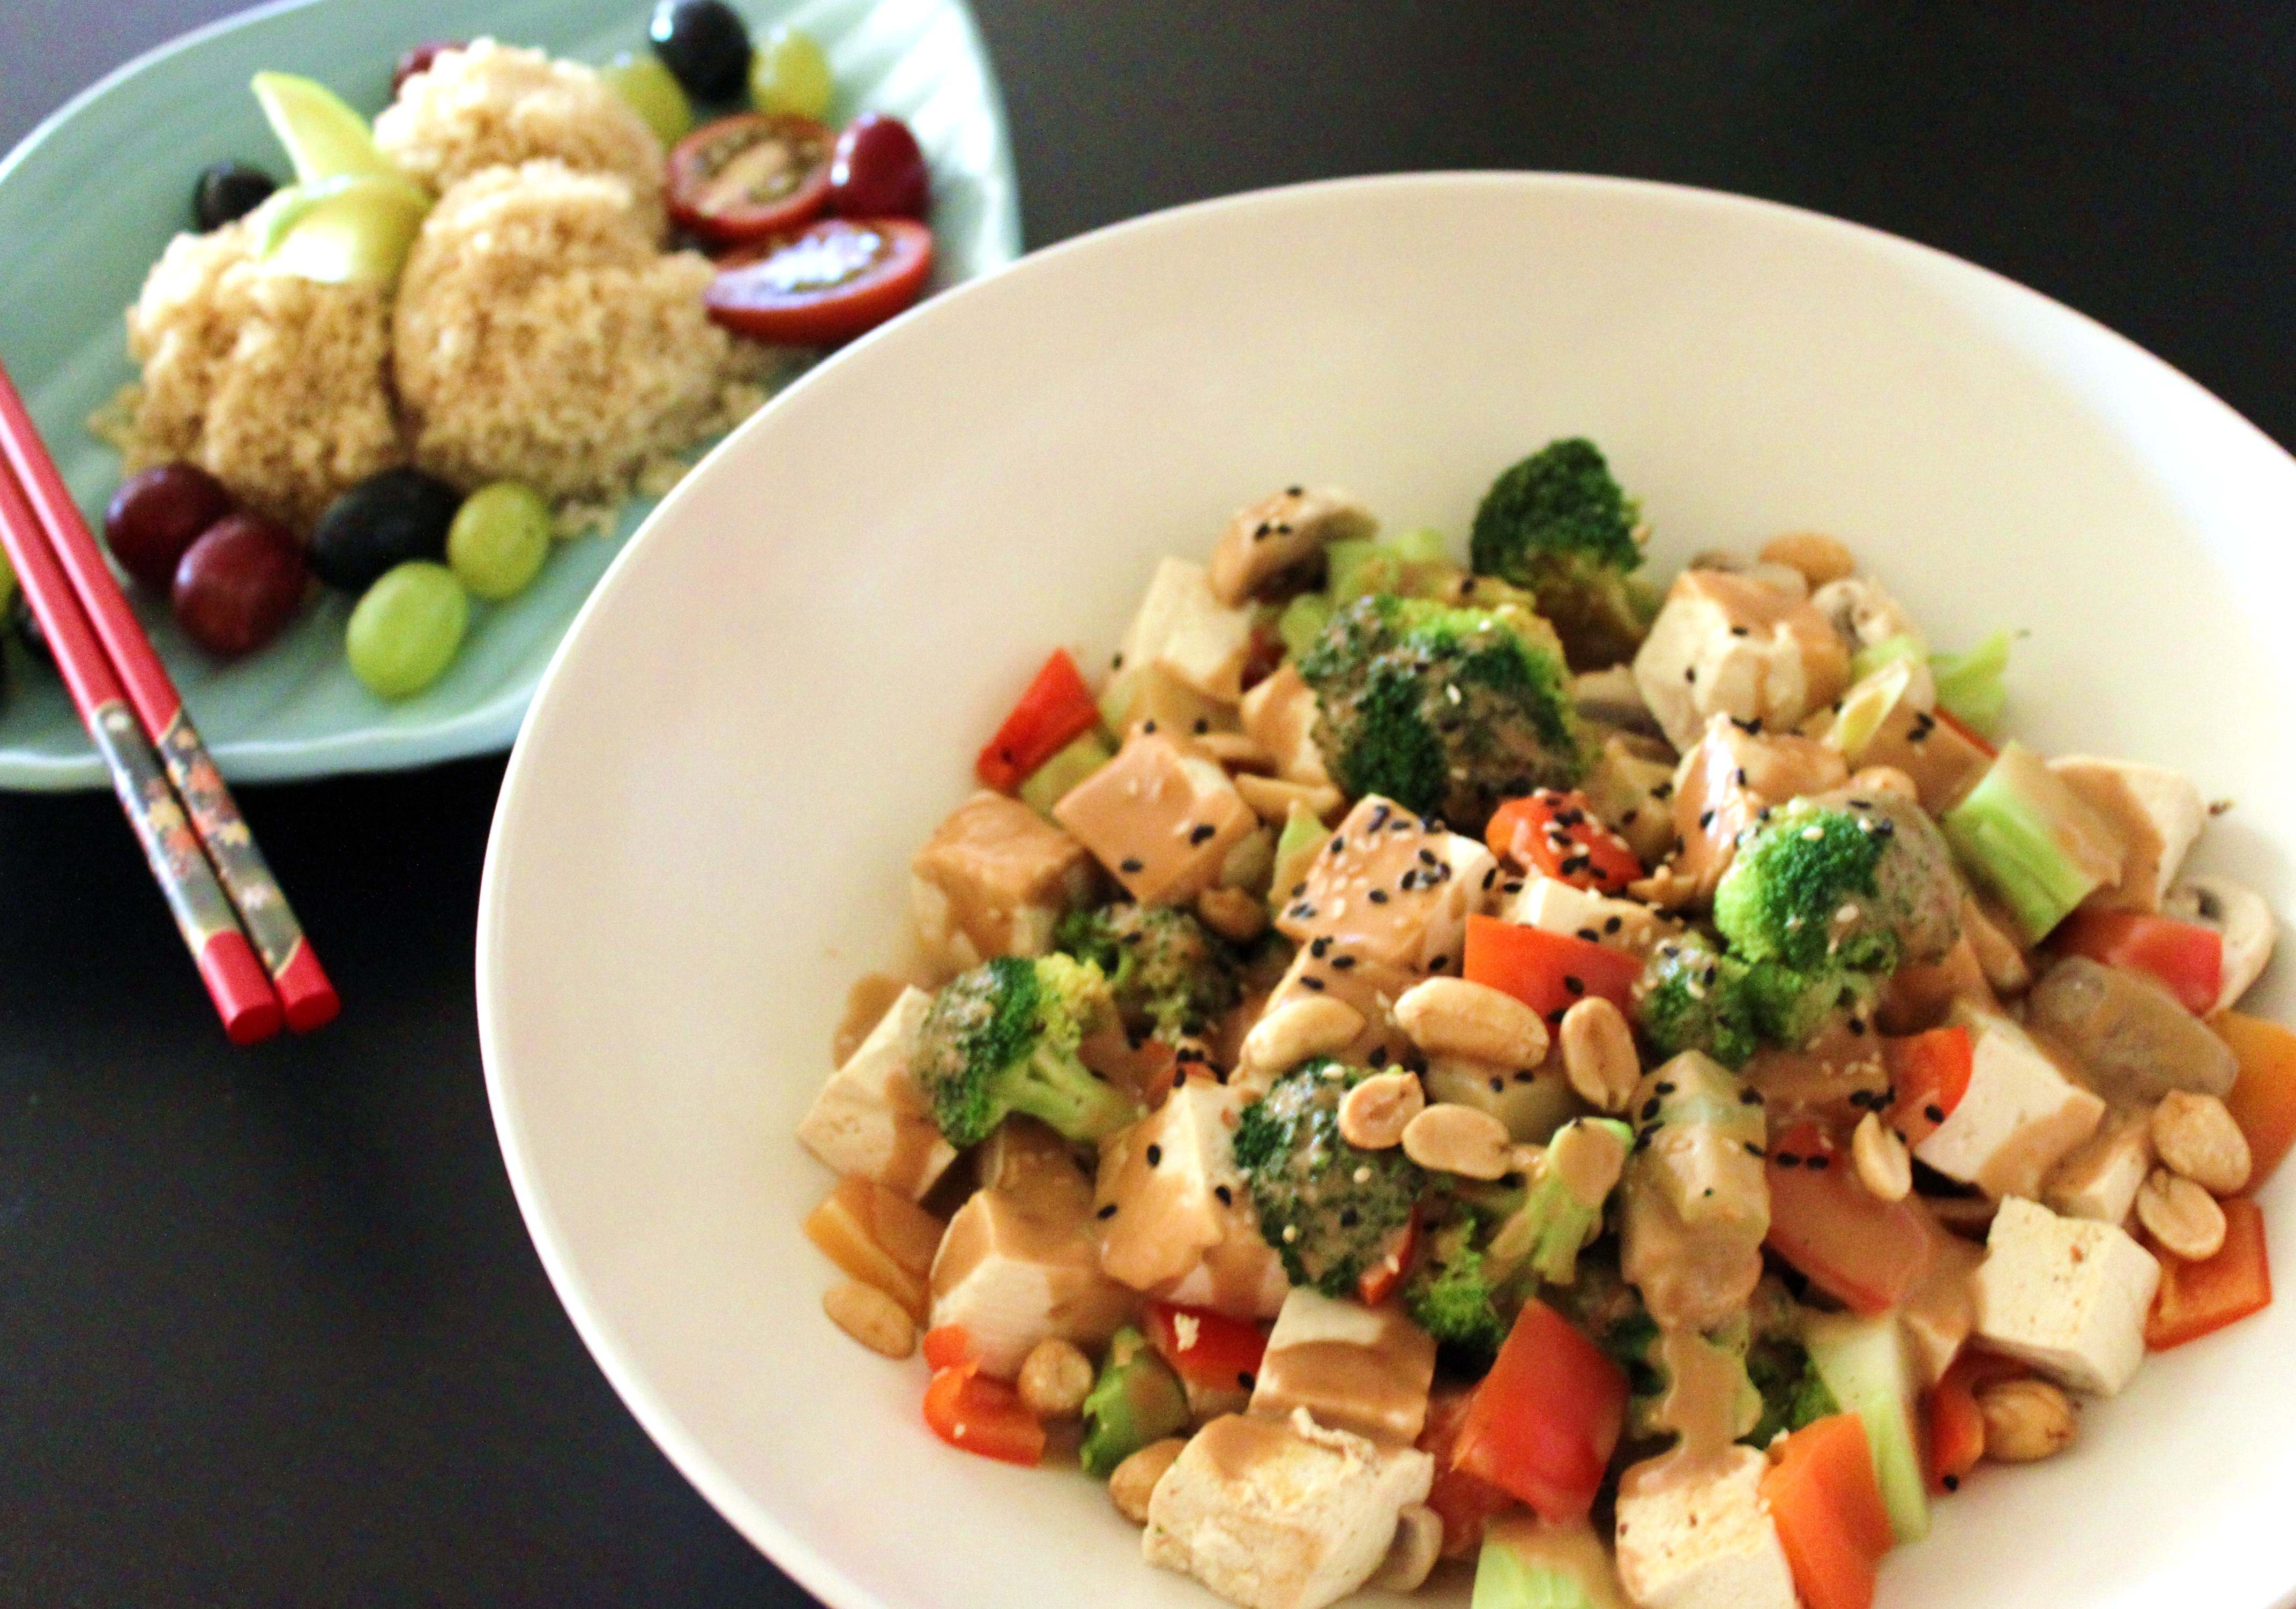 Meatless Mondays: Stir Fry With Peanut Sauce, Quinoa, and Tofu